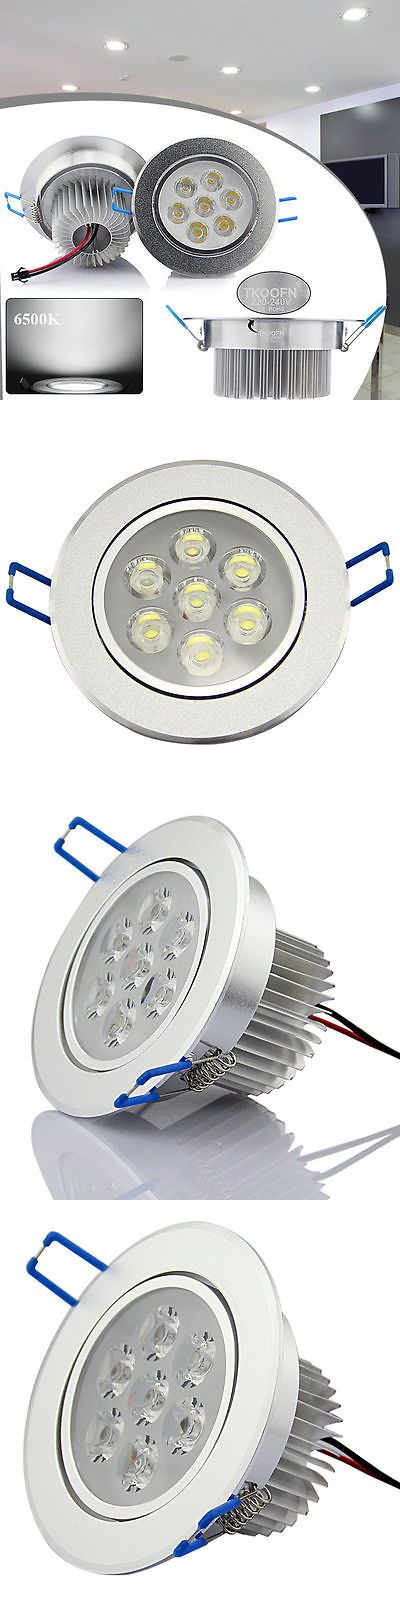 Lamps And Lighting: 6X 7W Led Ceiling Down Light Cool White Home Recessed Spotlight Lamp With Driver -> BUY IT NOW ONLY: $31.99 on eBay!